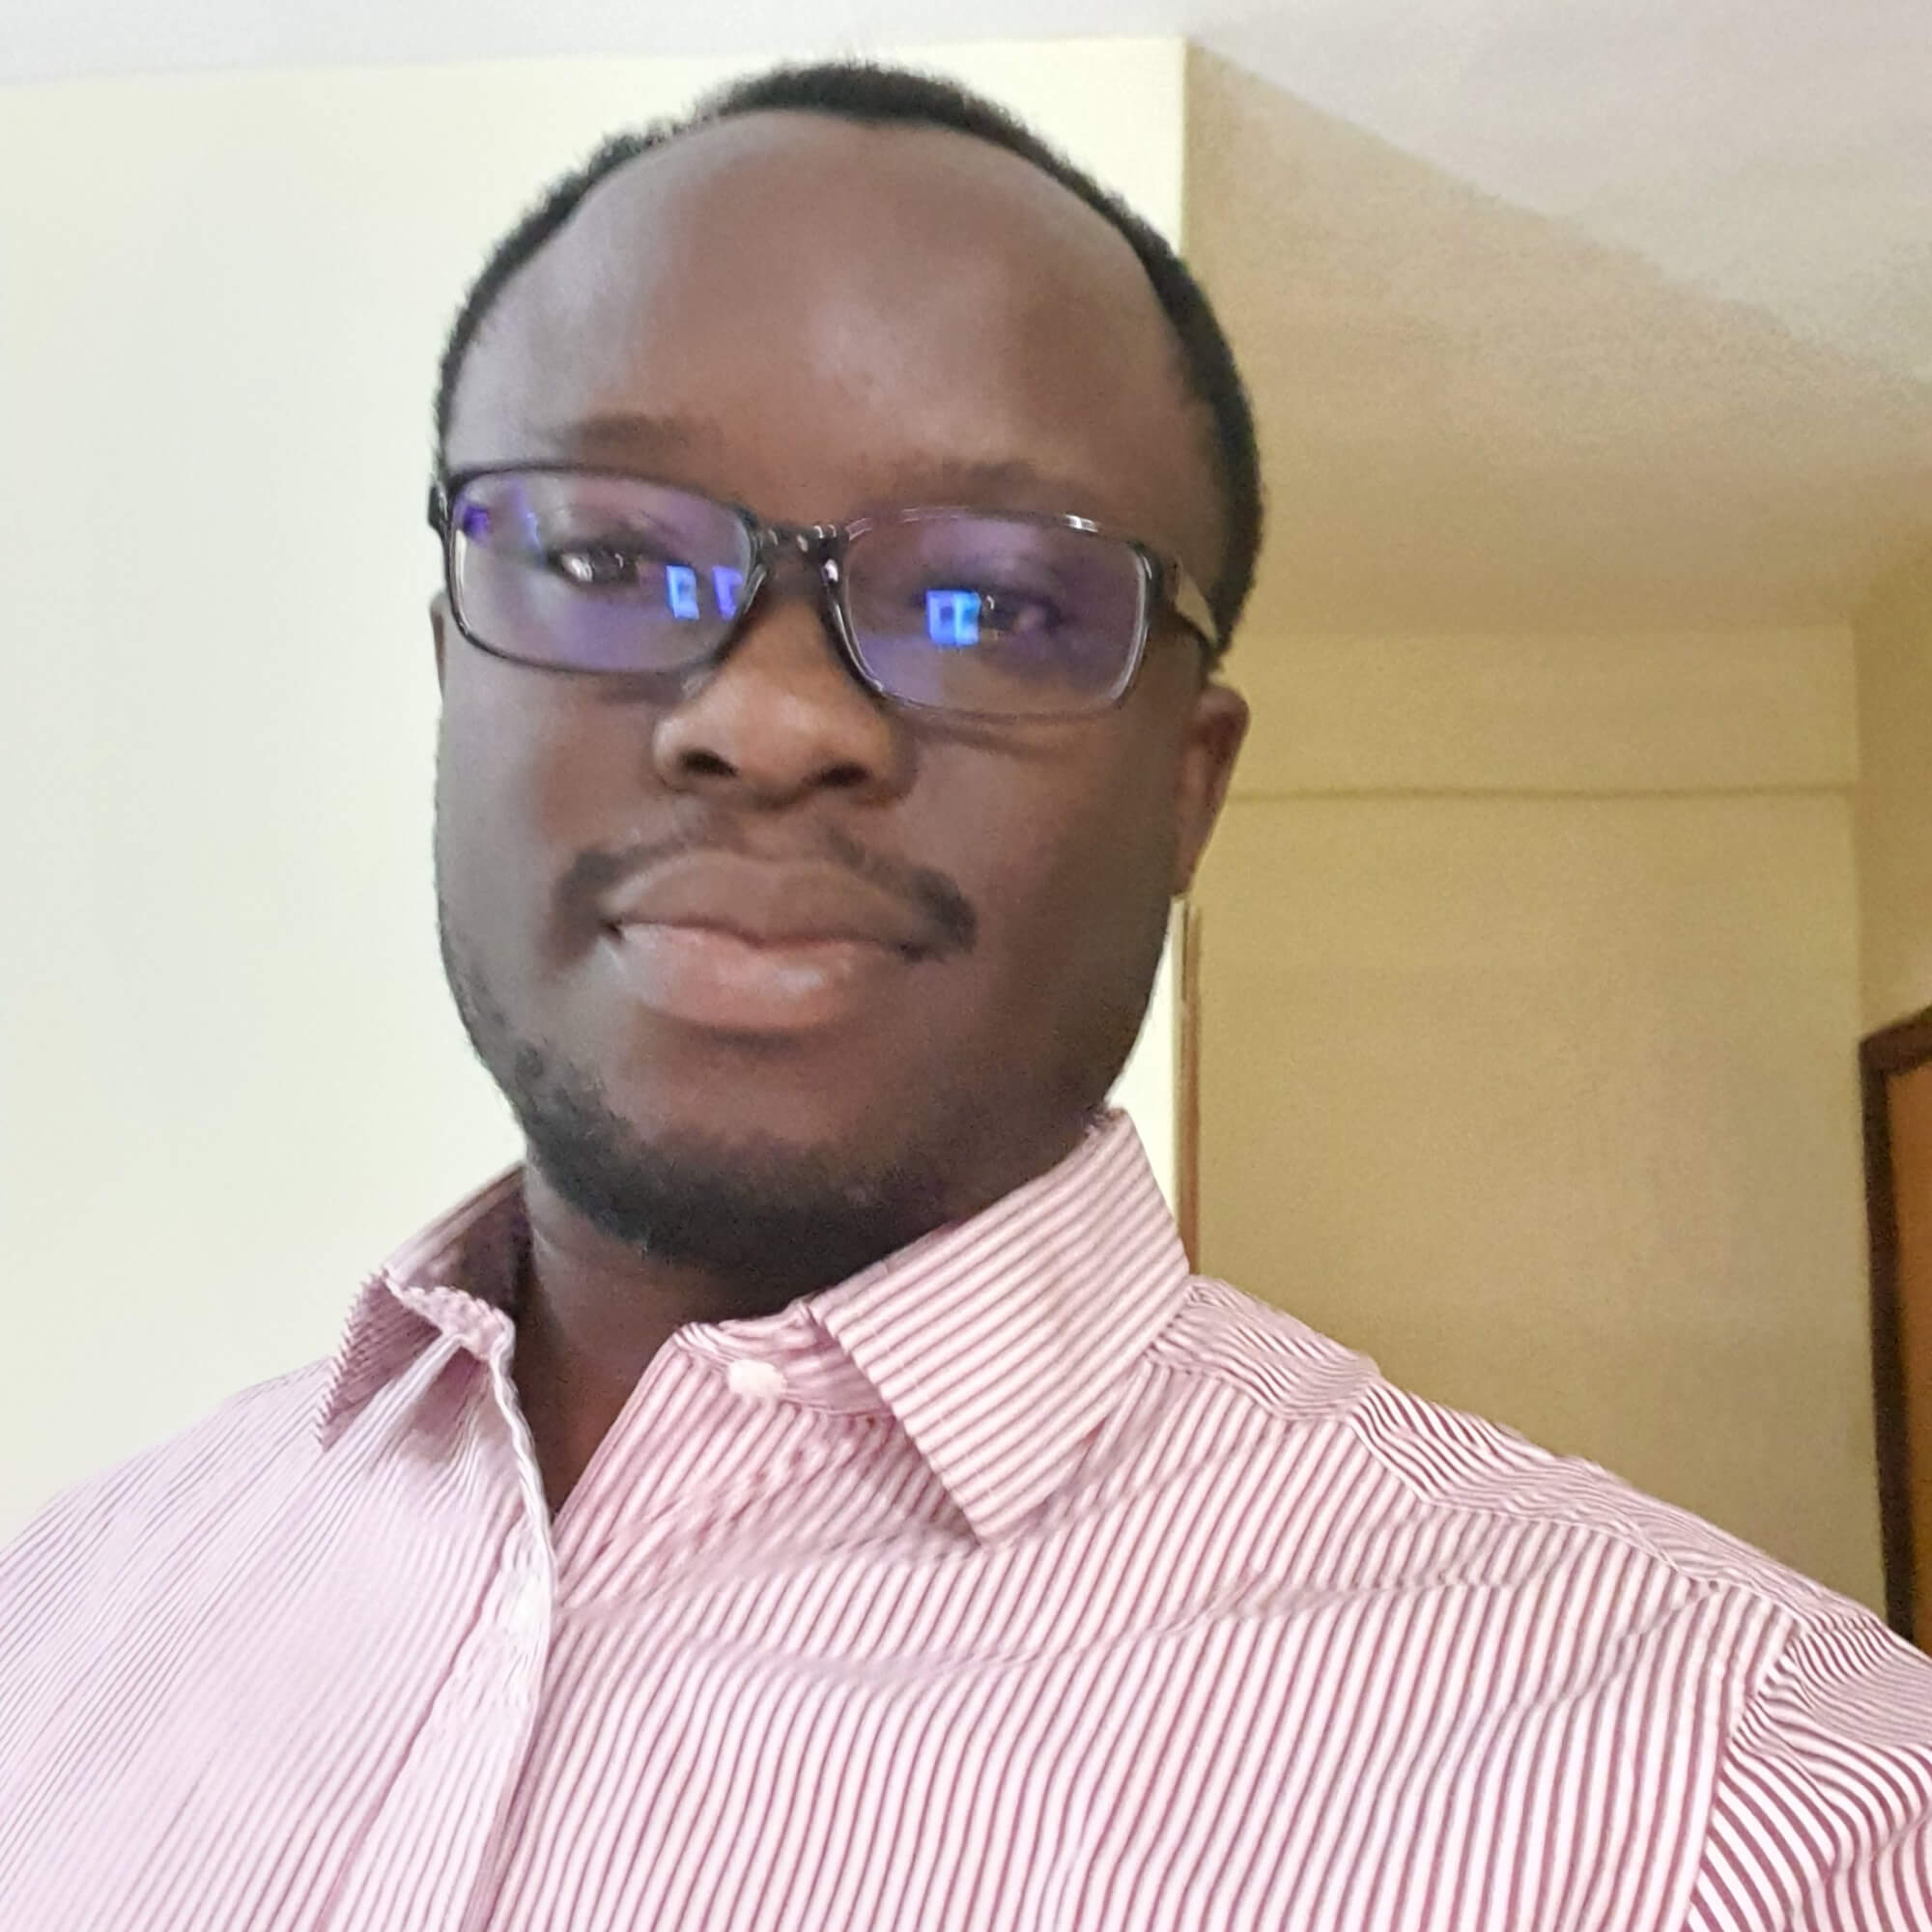 Chinedu wearing a pink striped shirt and glasses.